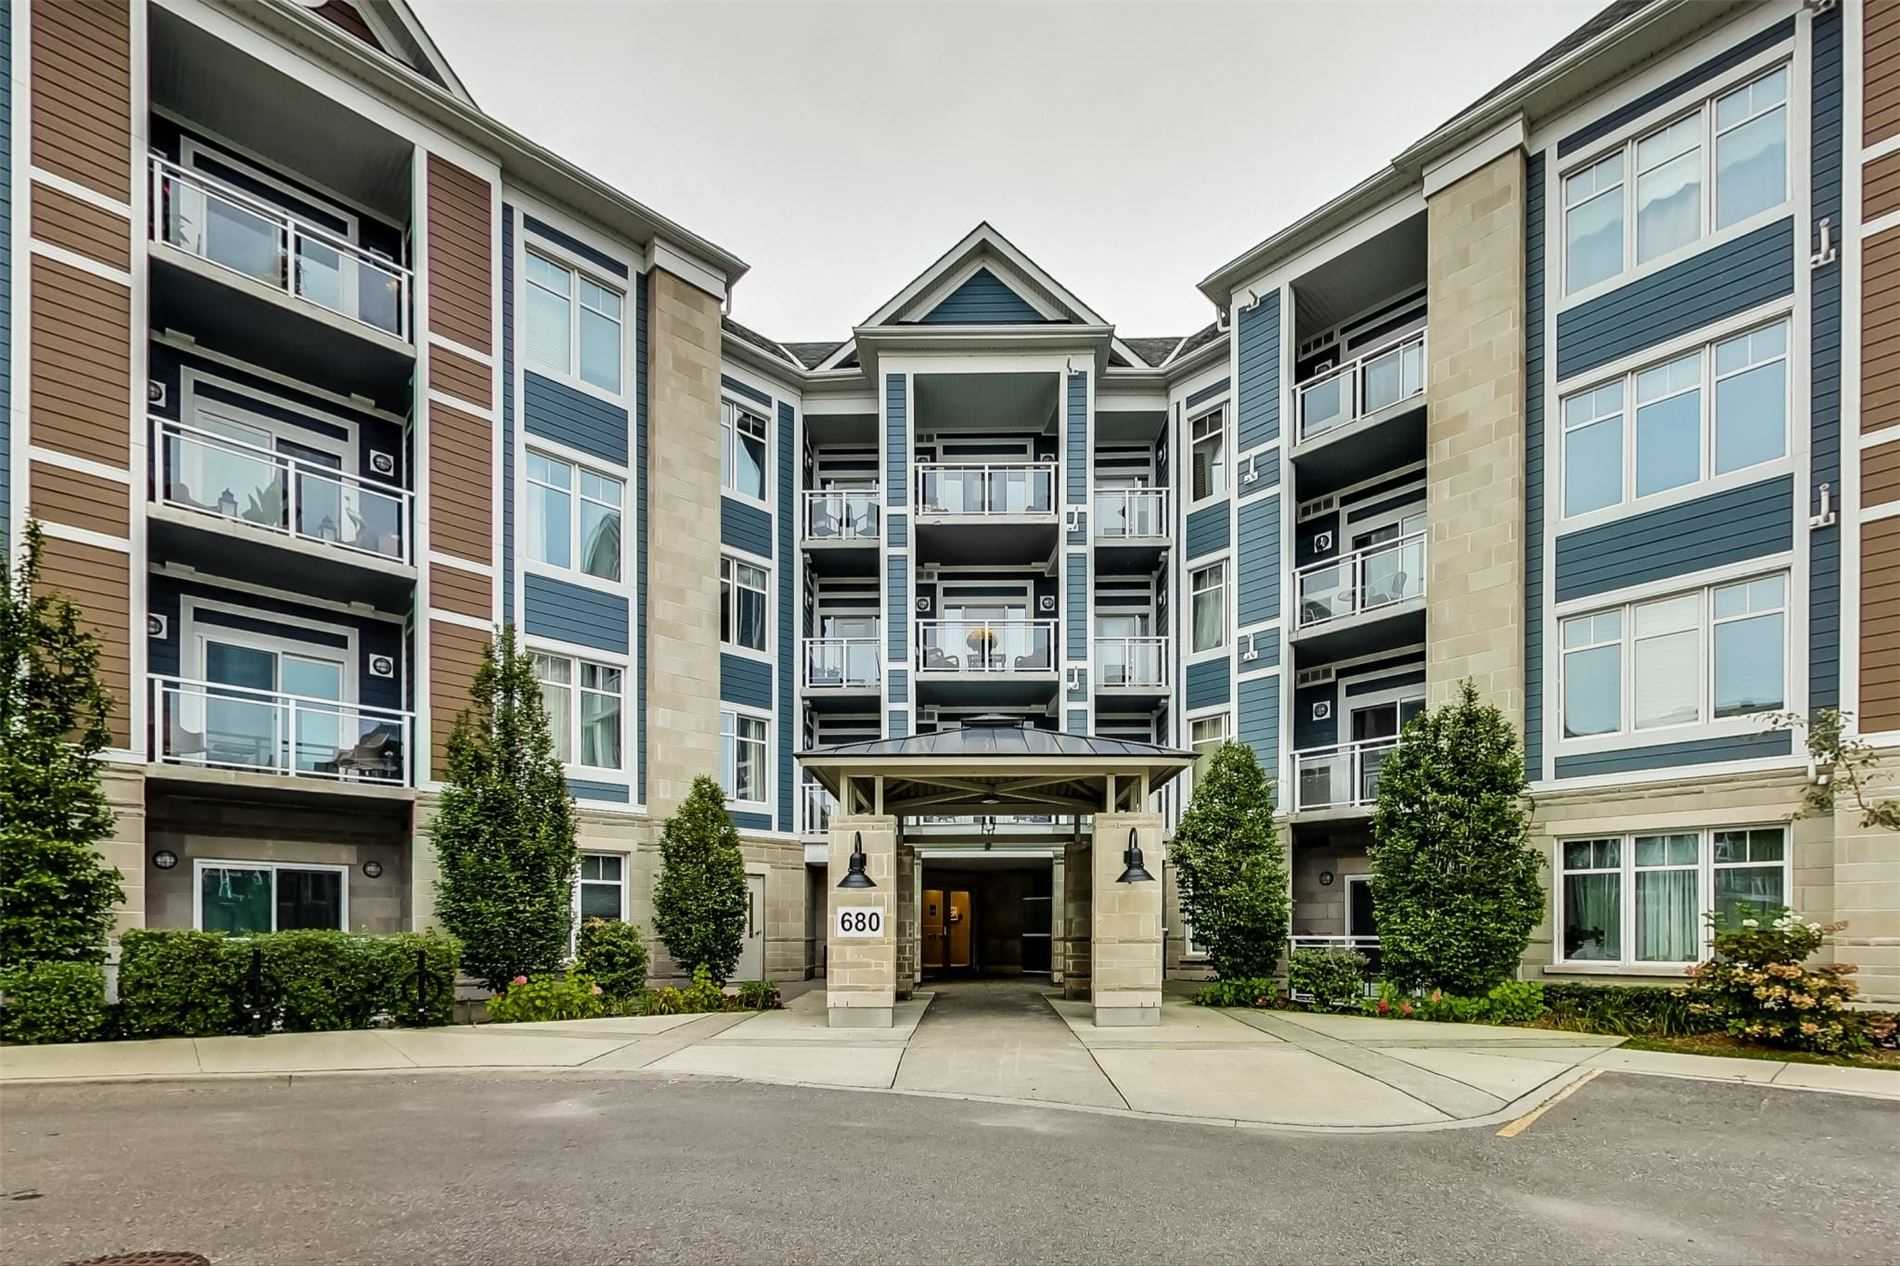 Condo Apt For Sale In Whitby